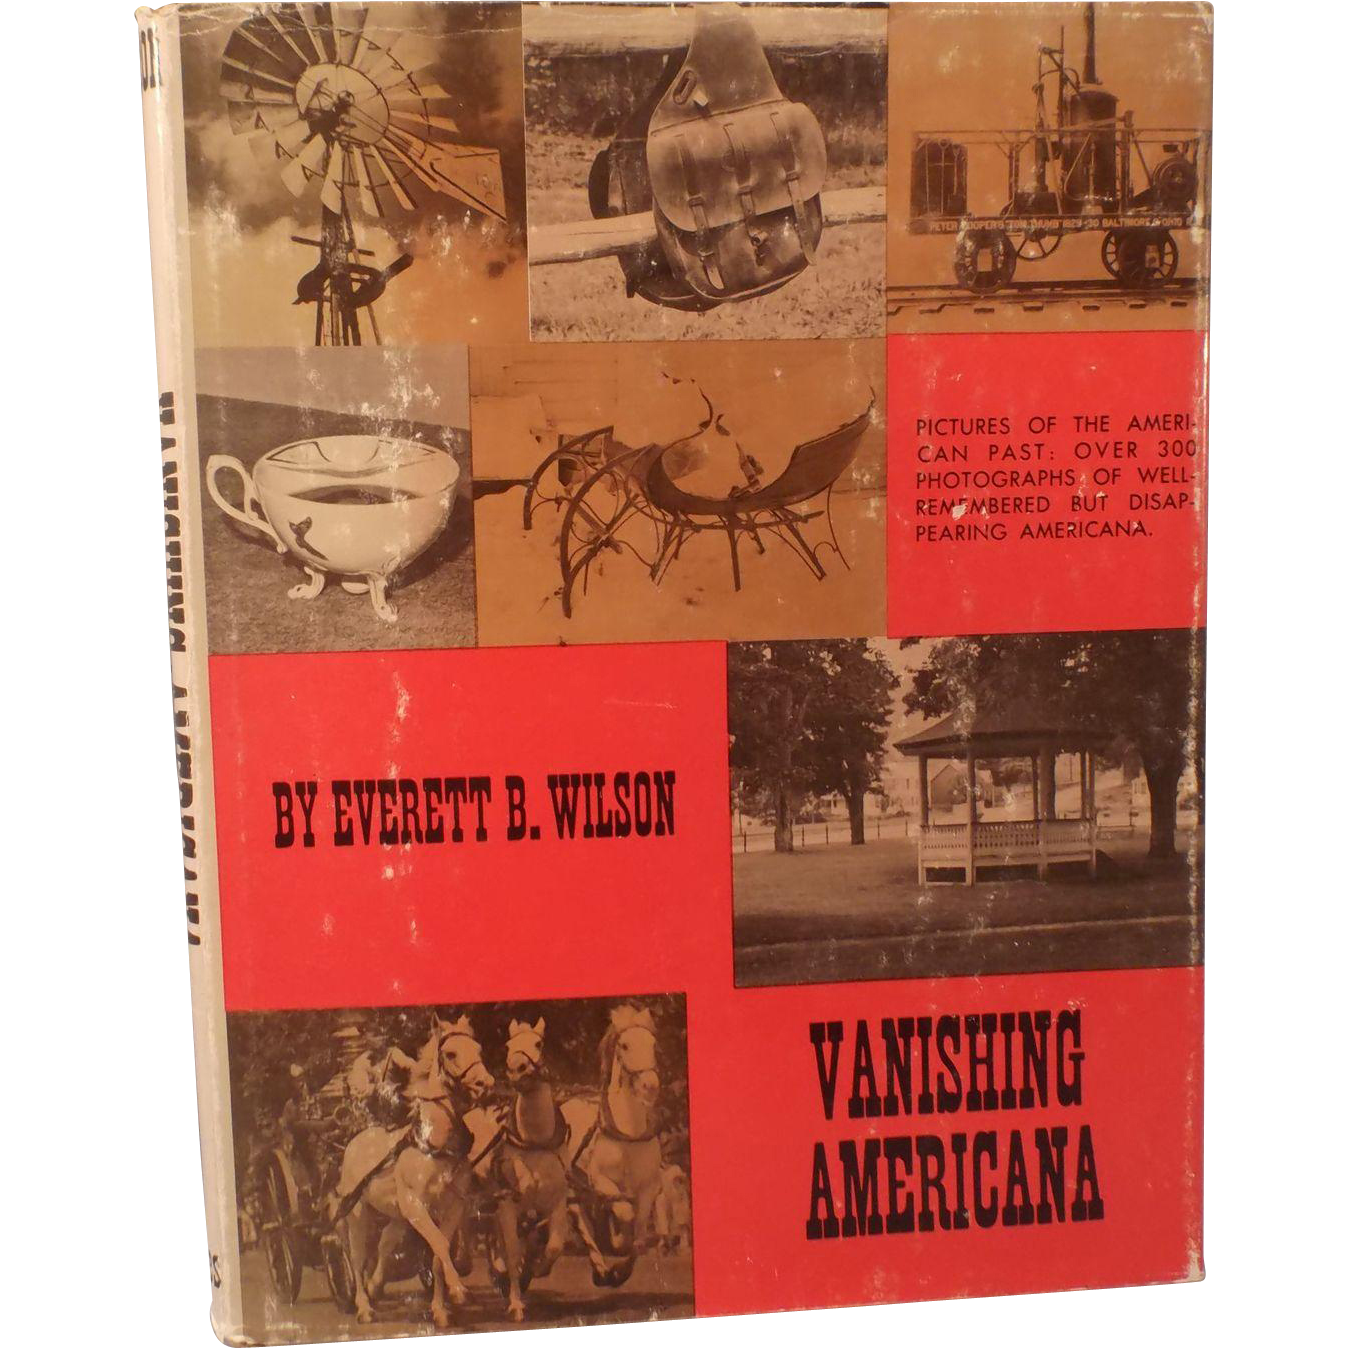 Vanishing Americana. Pictures of the American Past: Over 300 Photographs of Well-Remembered but Disappering Americana., Everett B. Wilson